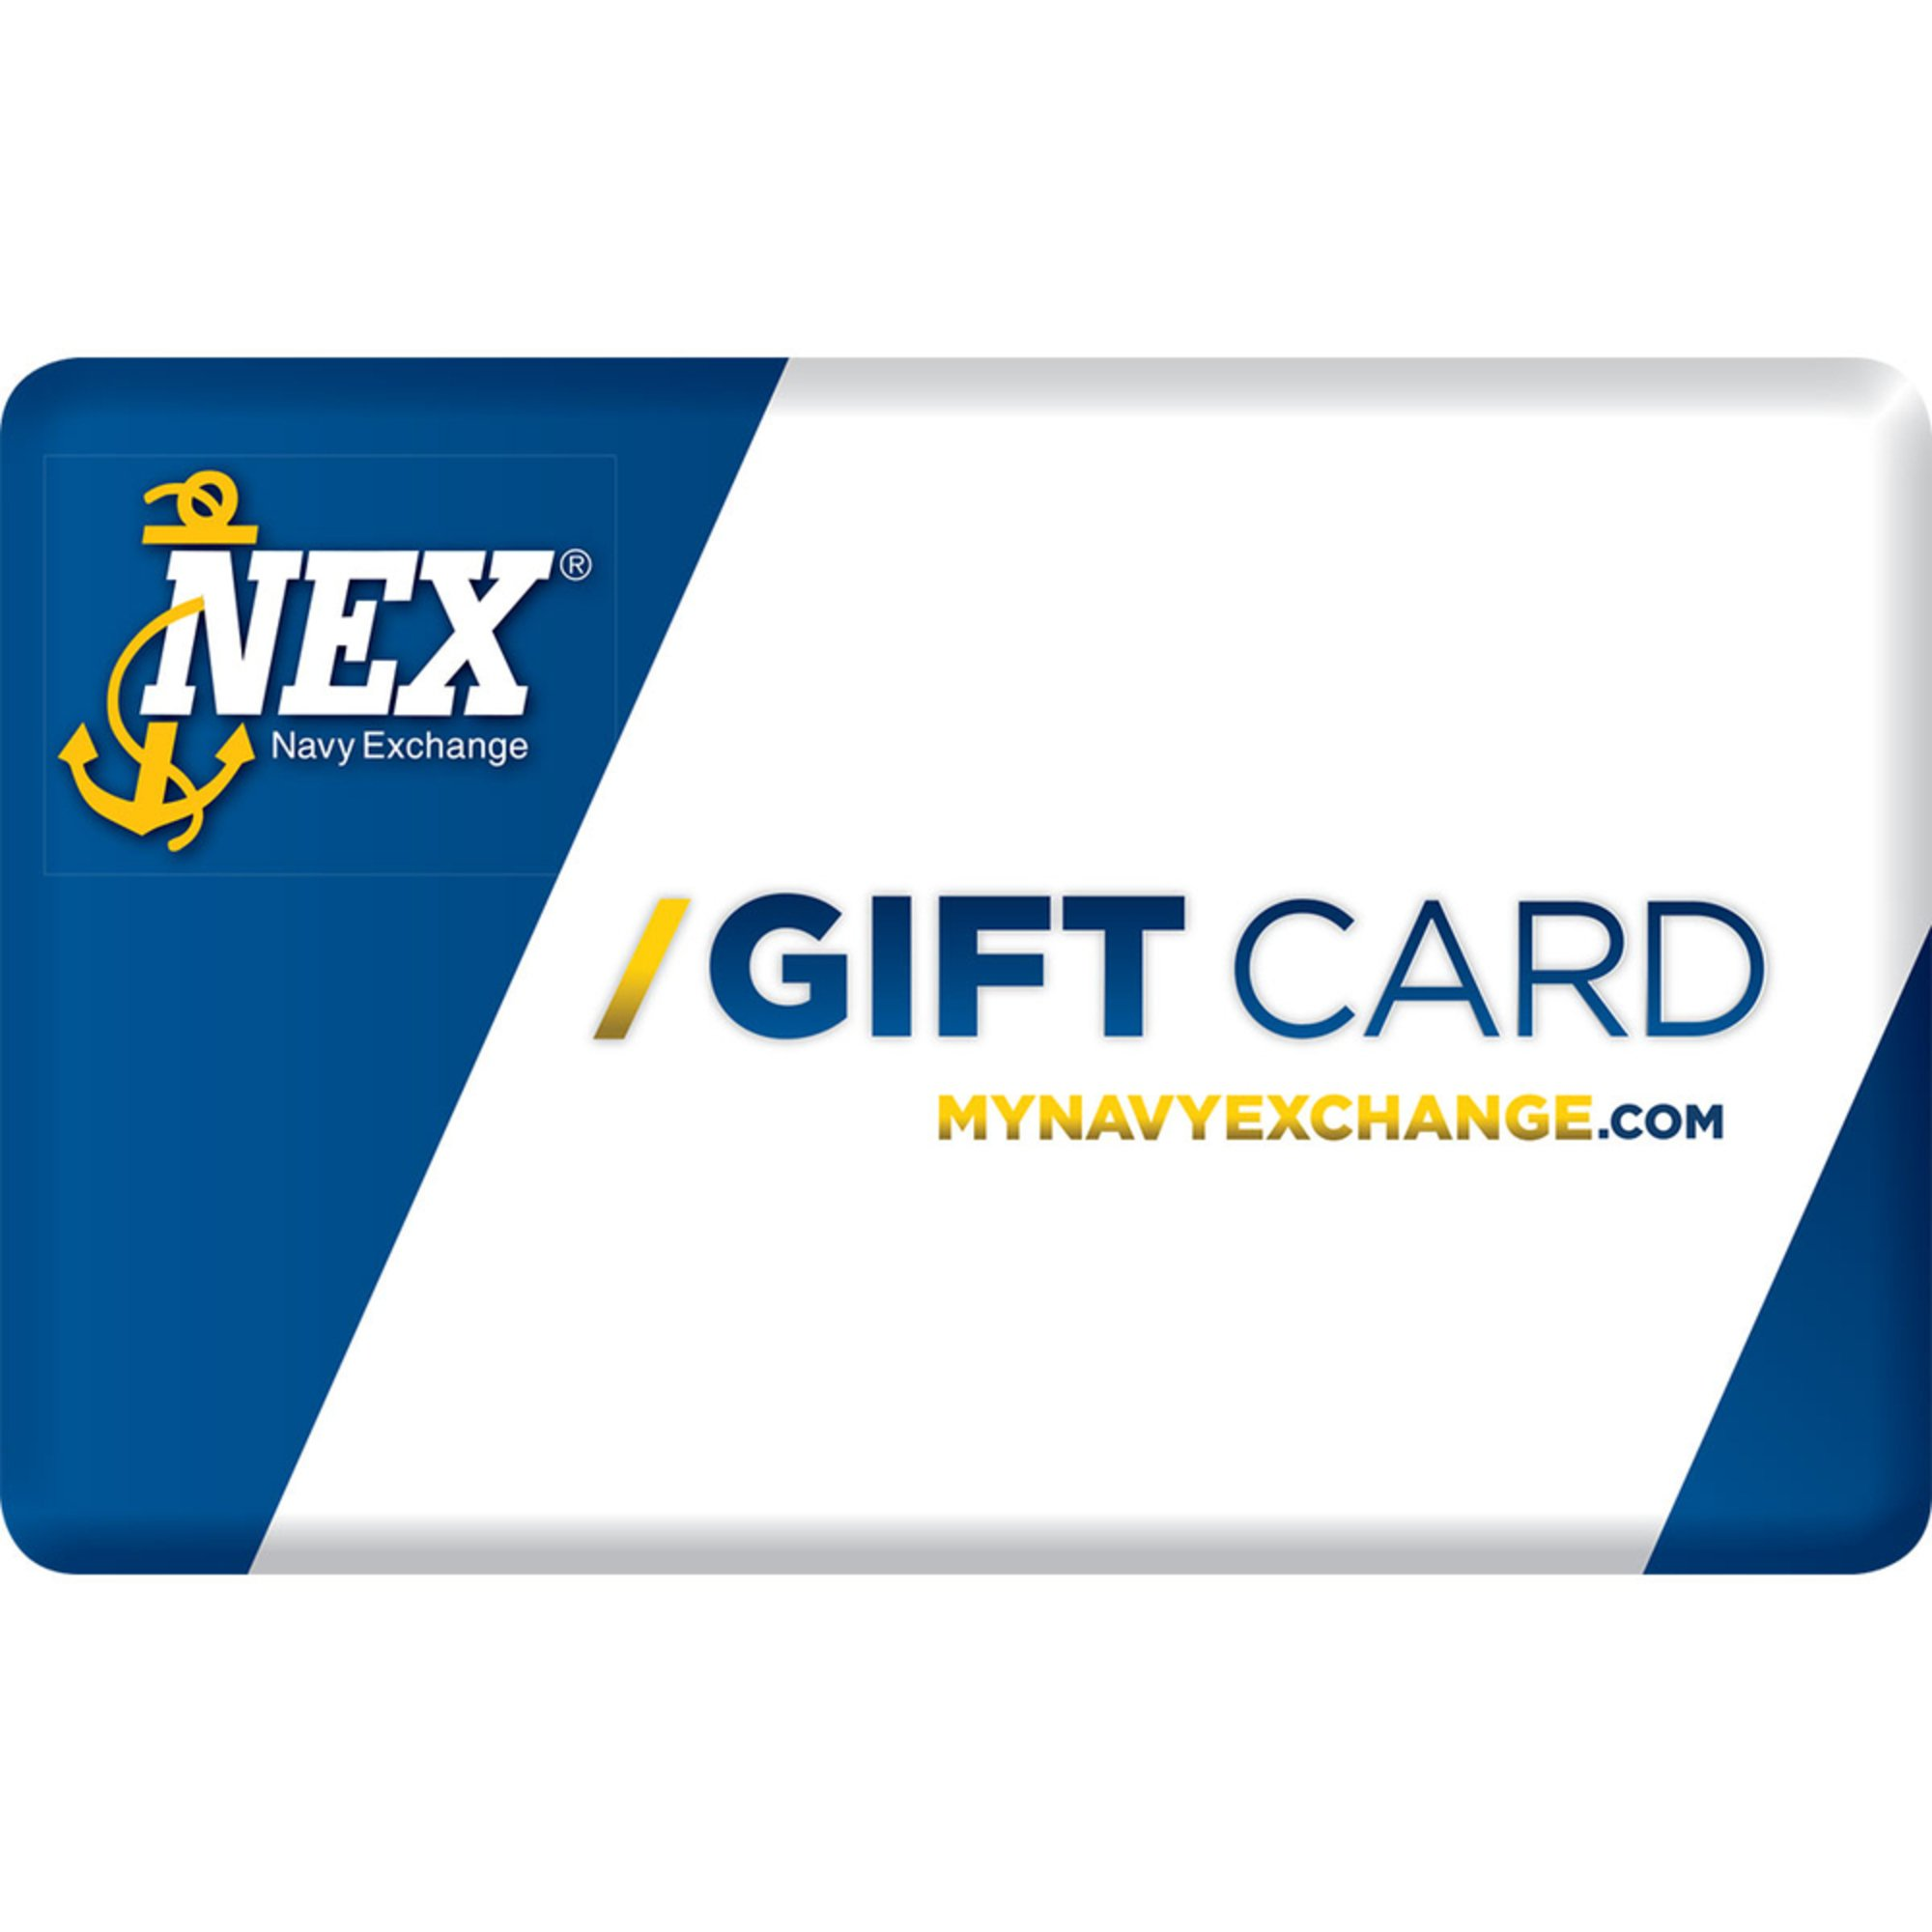 Visa Gift Card As of August 24, , Nationwide Bank will no longer offer new Gift Cards. If you already have a Nationwide Bank Gift Card, you may continue to use it everywhere Visa is accepted until the funds are spent or until your card expires.